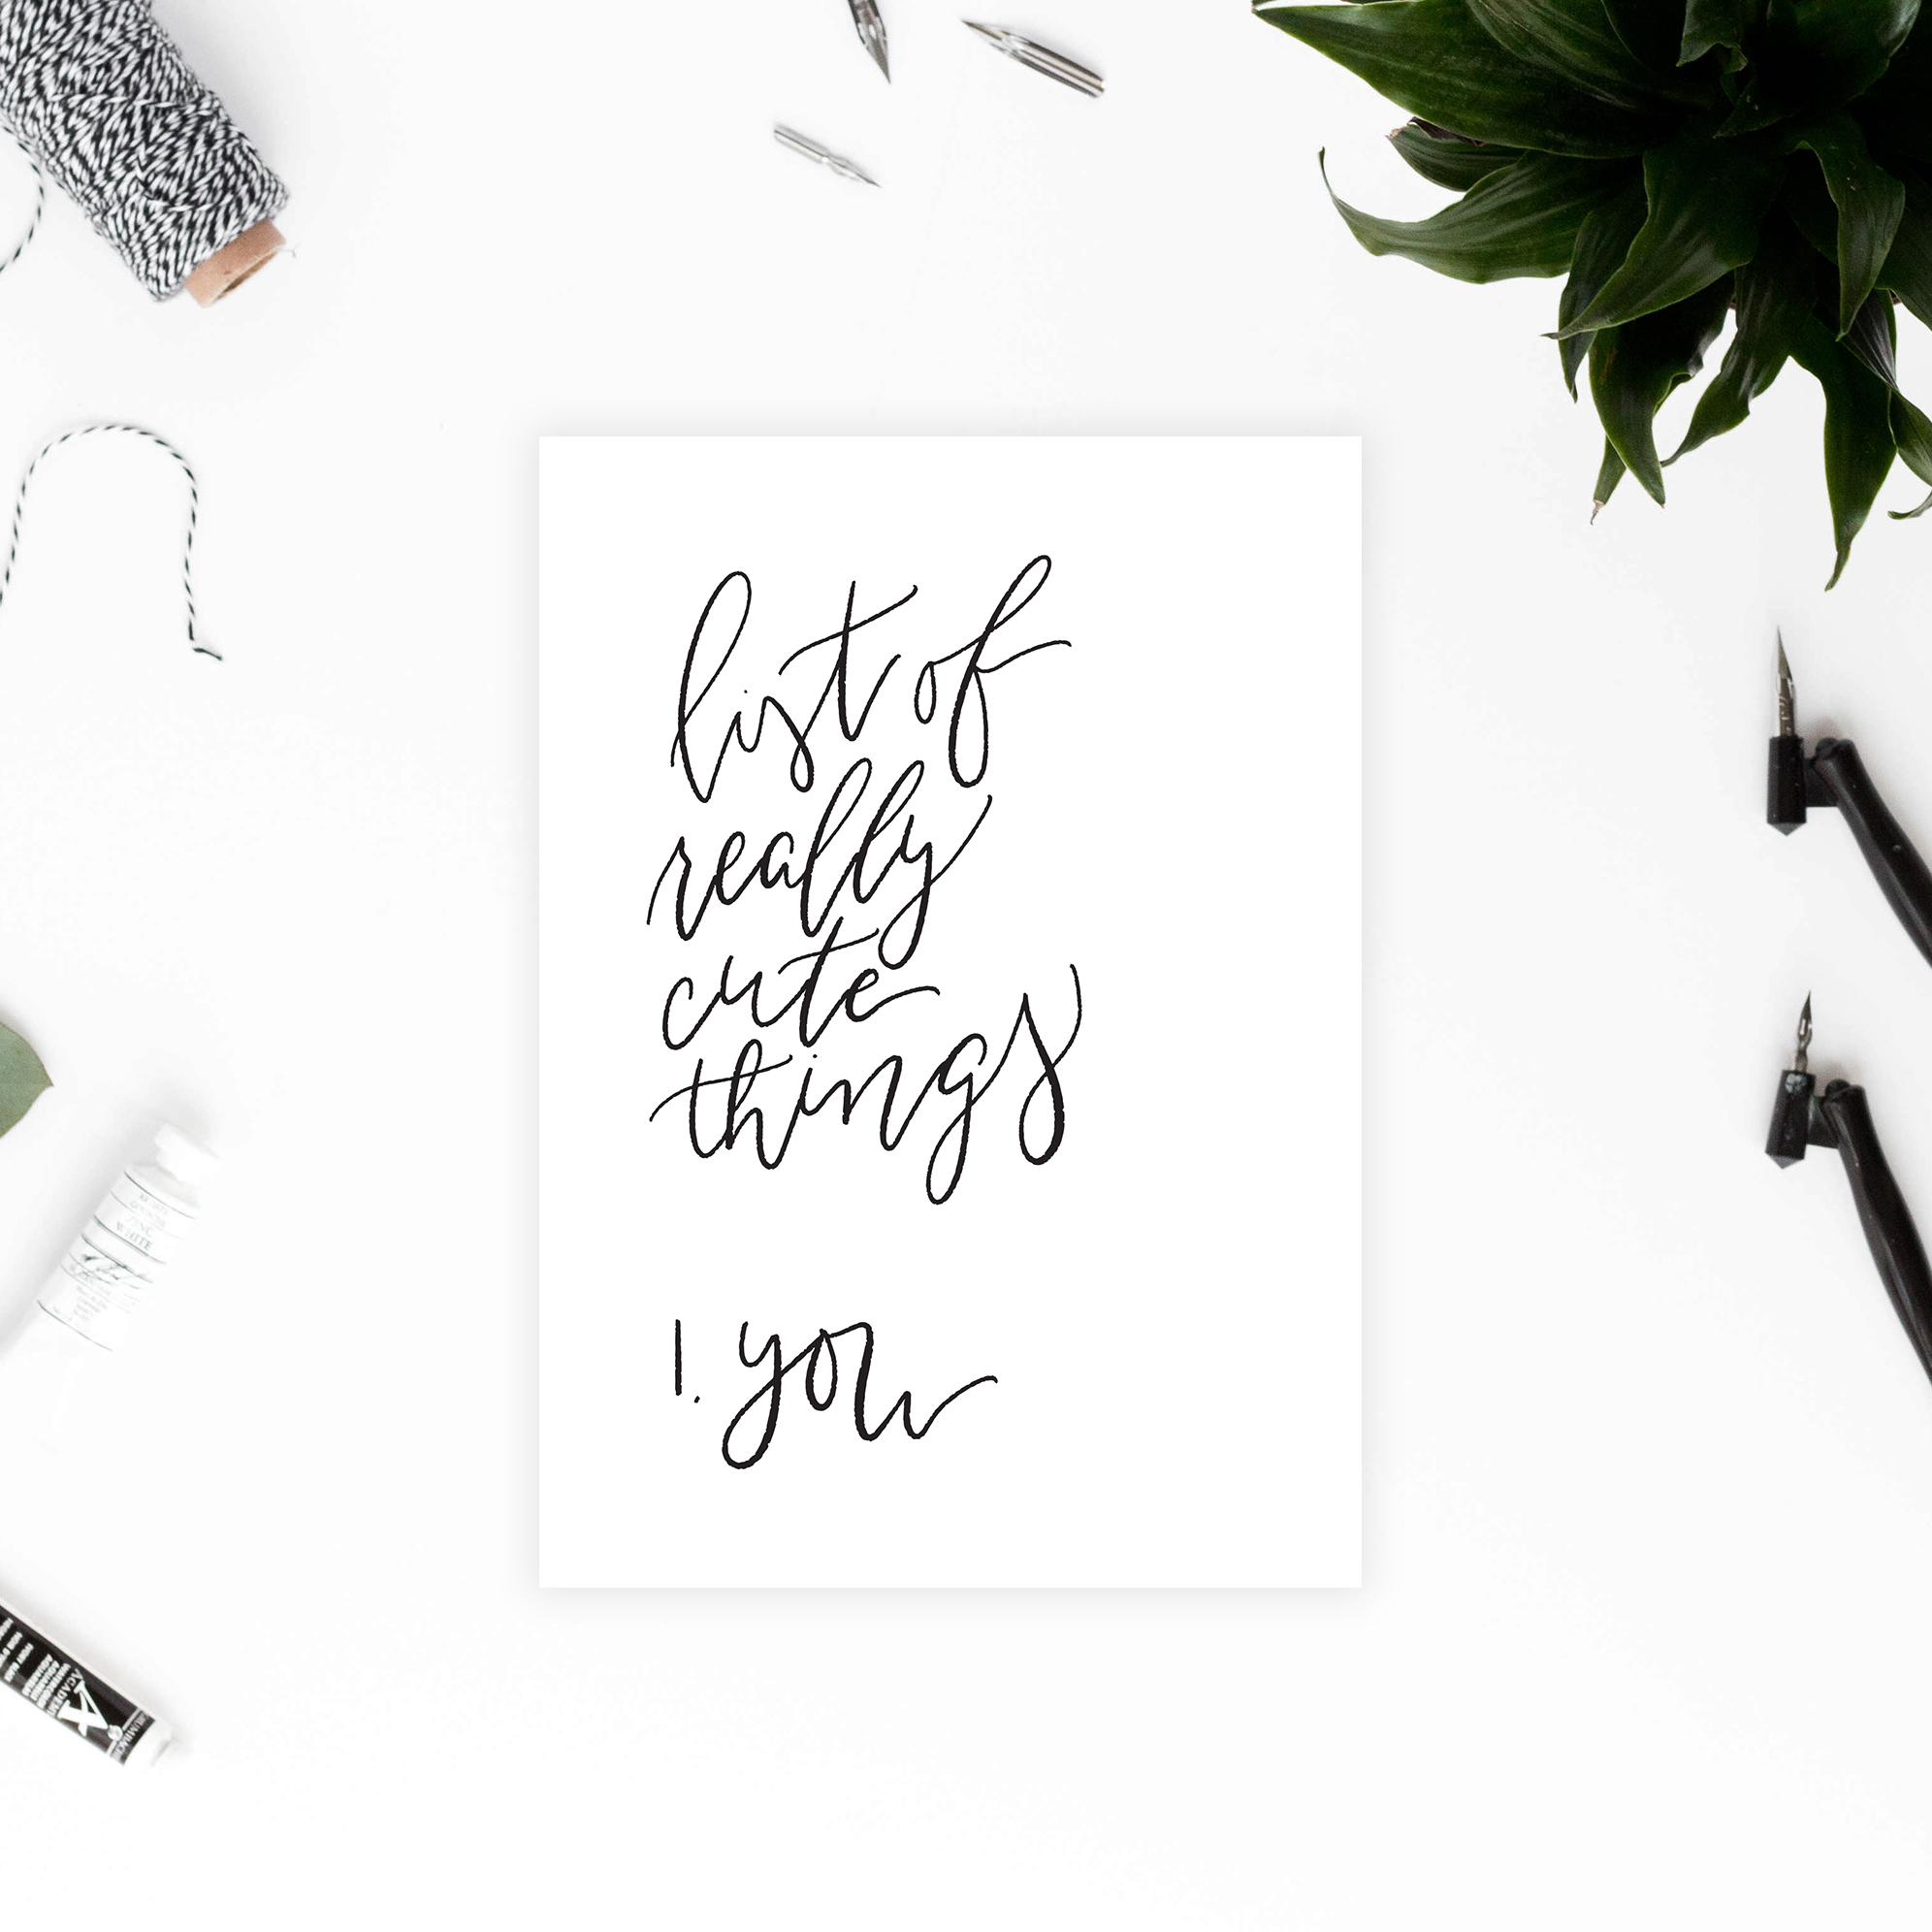 List of Really Cute Things Card - DIY Valentines Day Printable Card - Romantic and Sweet Greeting Card featuring Minimalist Design and Calligraphy - True North Paper Co.